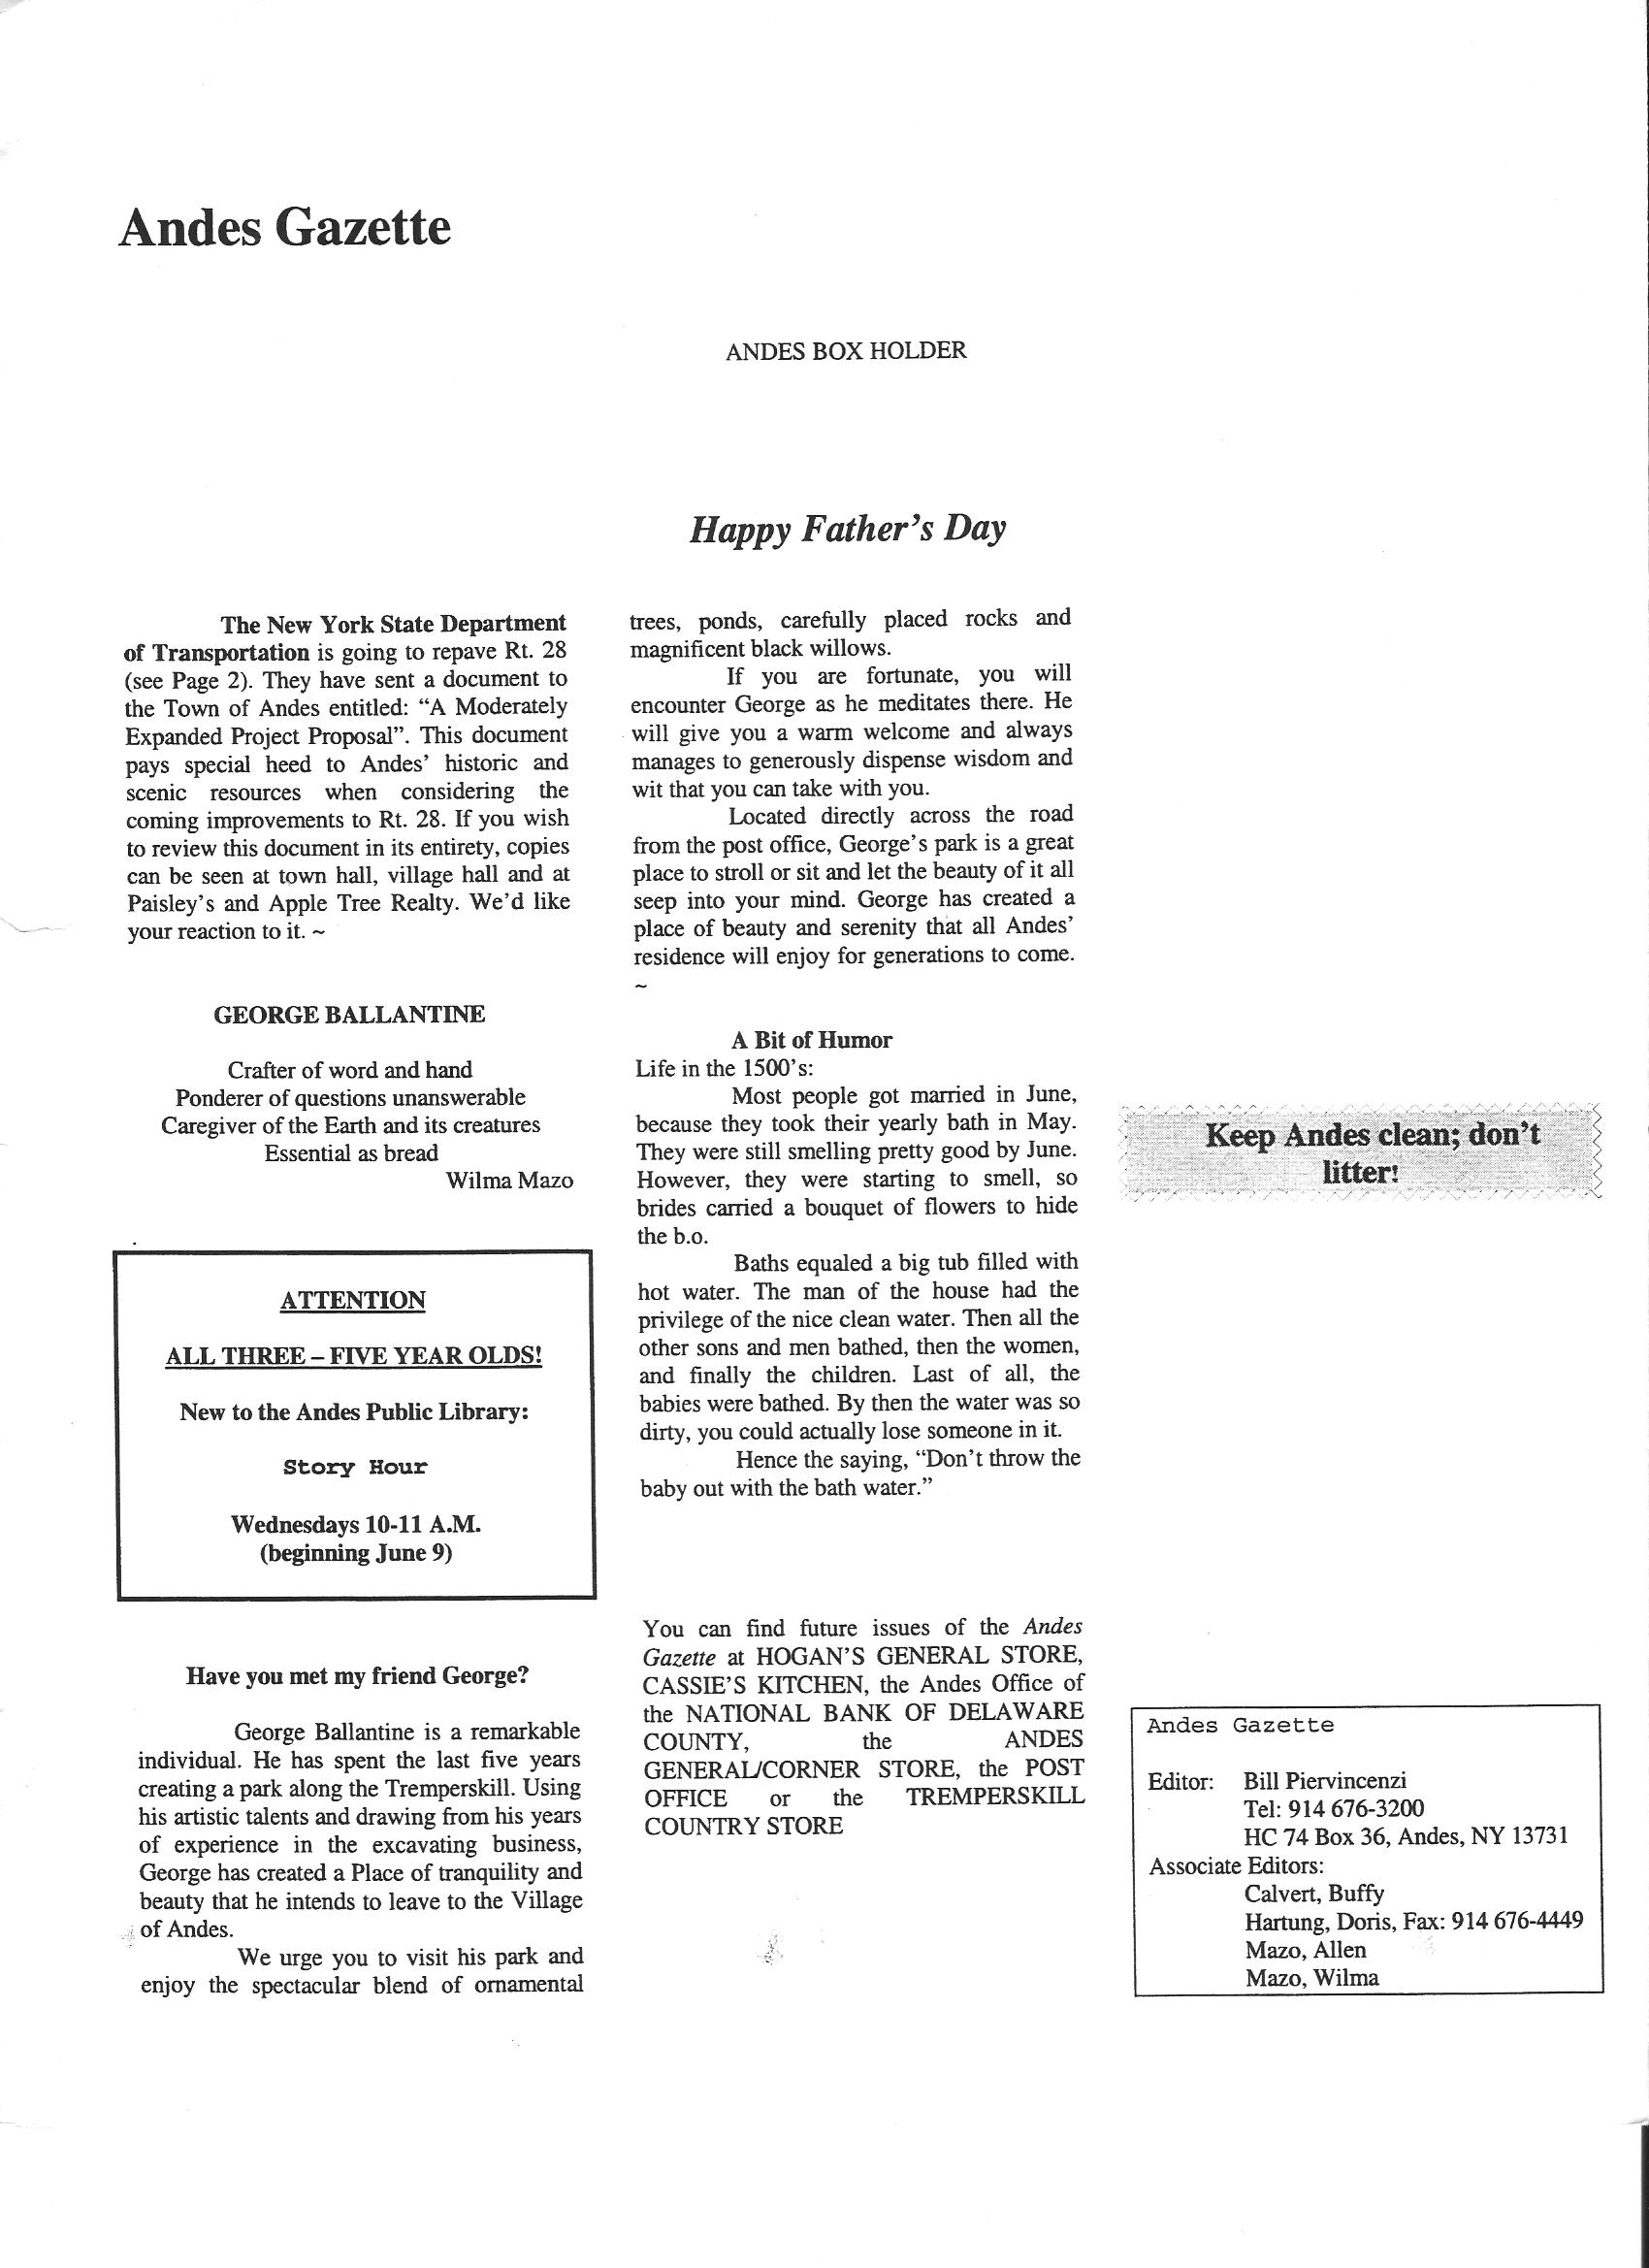 ANDES GAZETTE - JUNE 1999 - Page 4